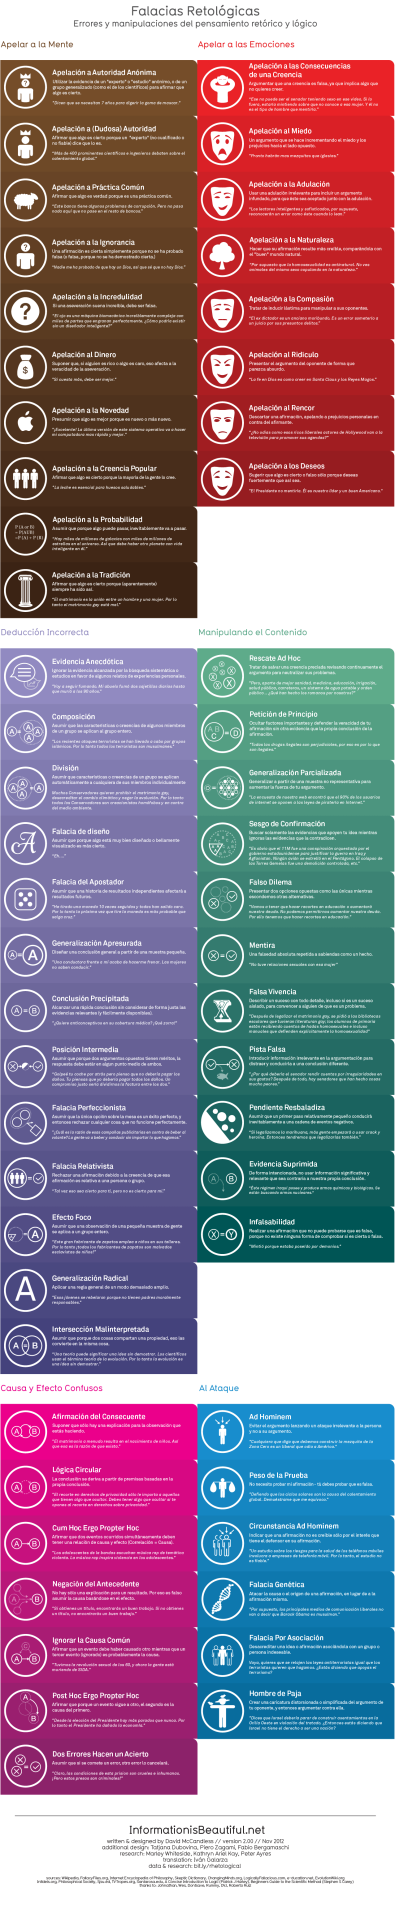 1276_Rhetological-Fallacies_ES1